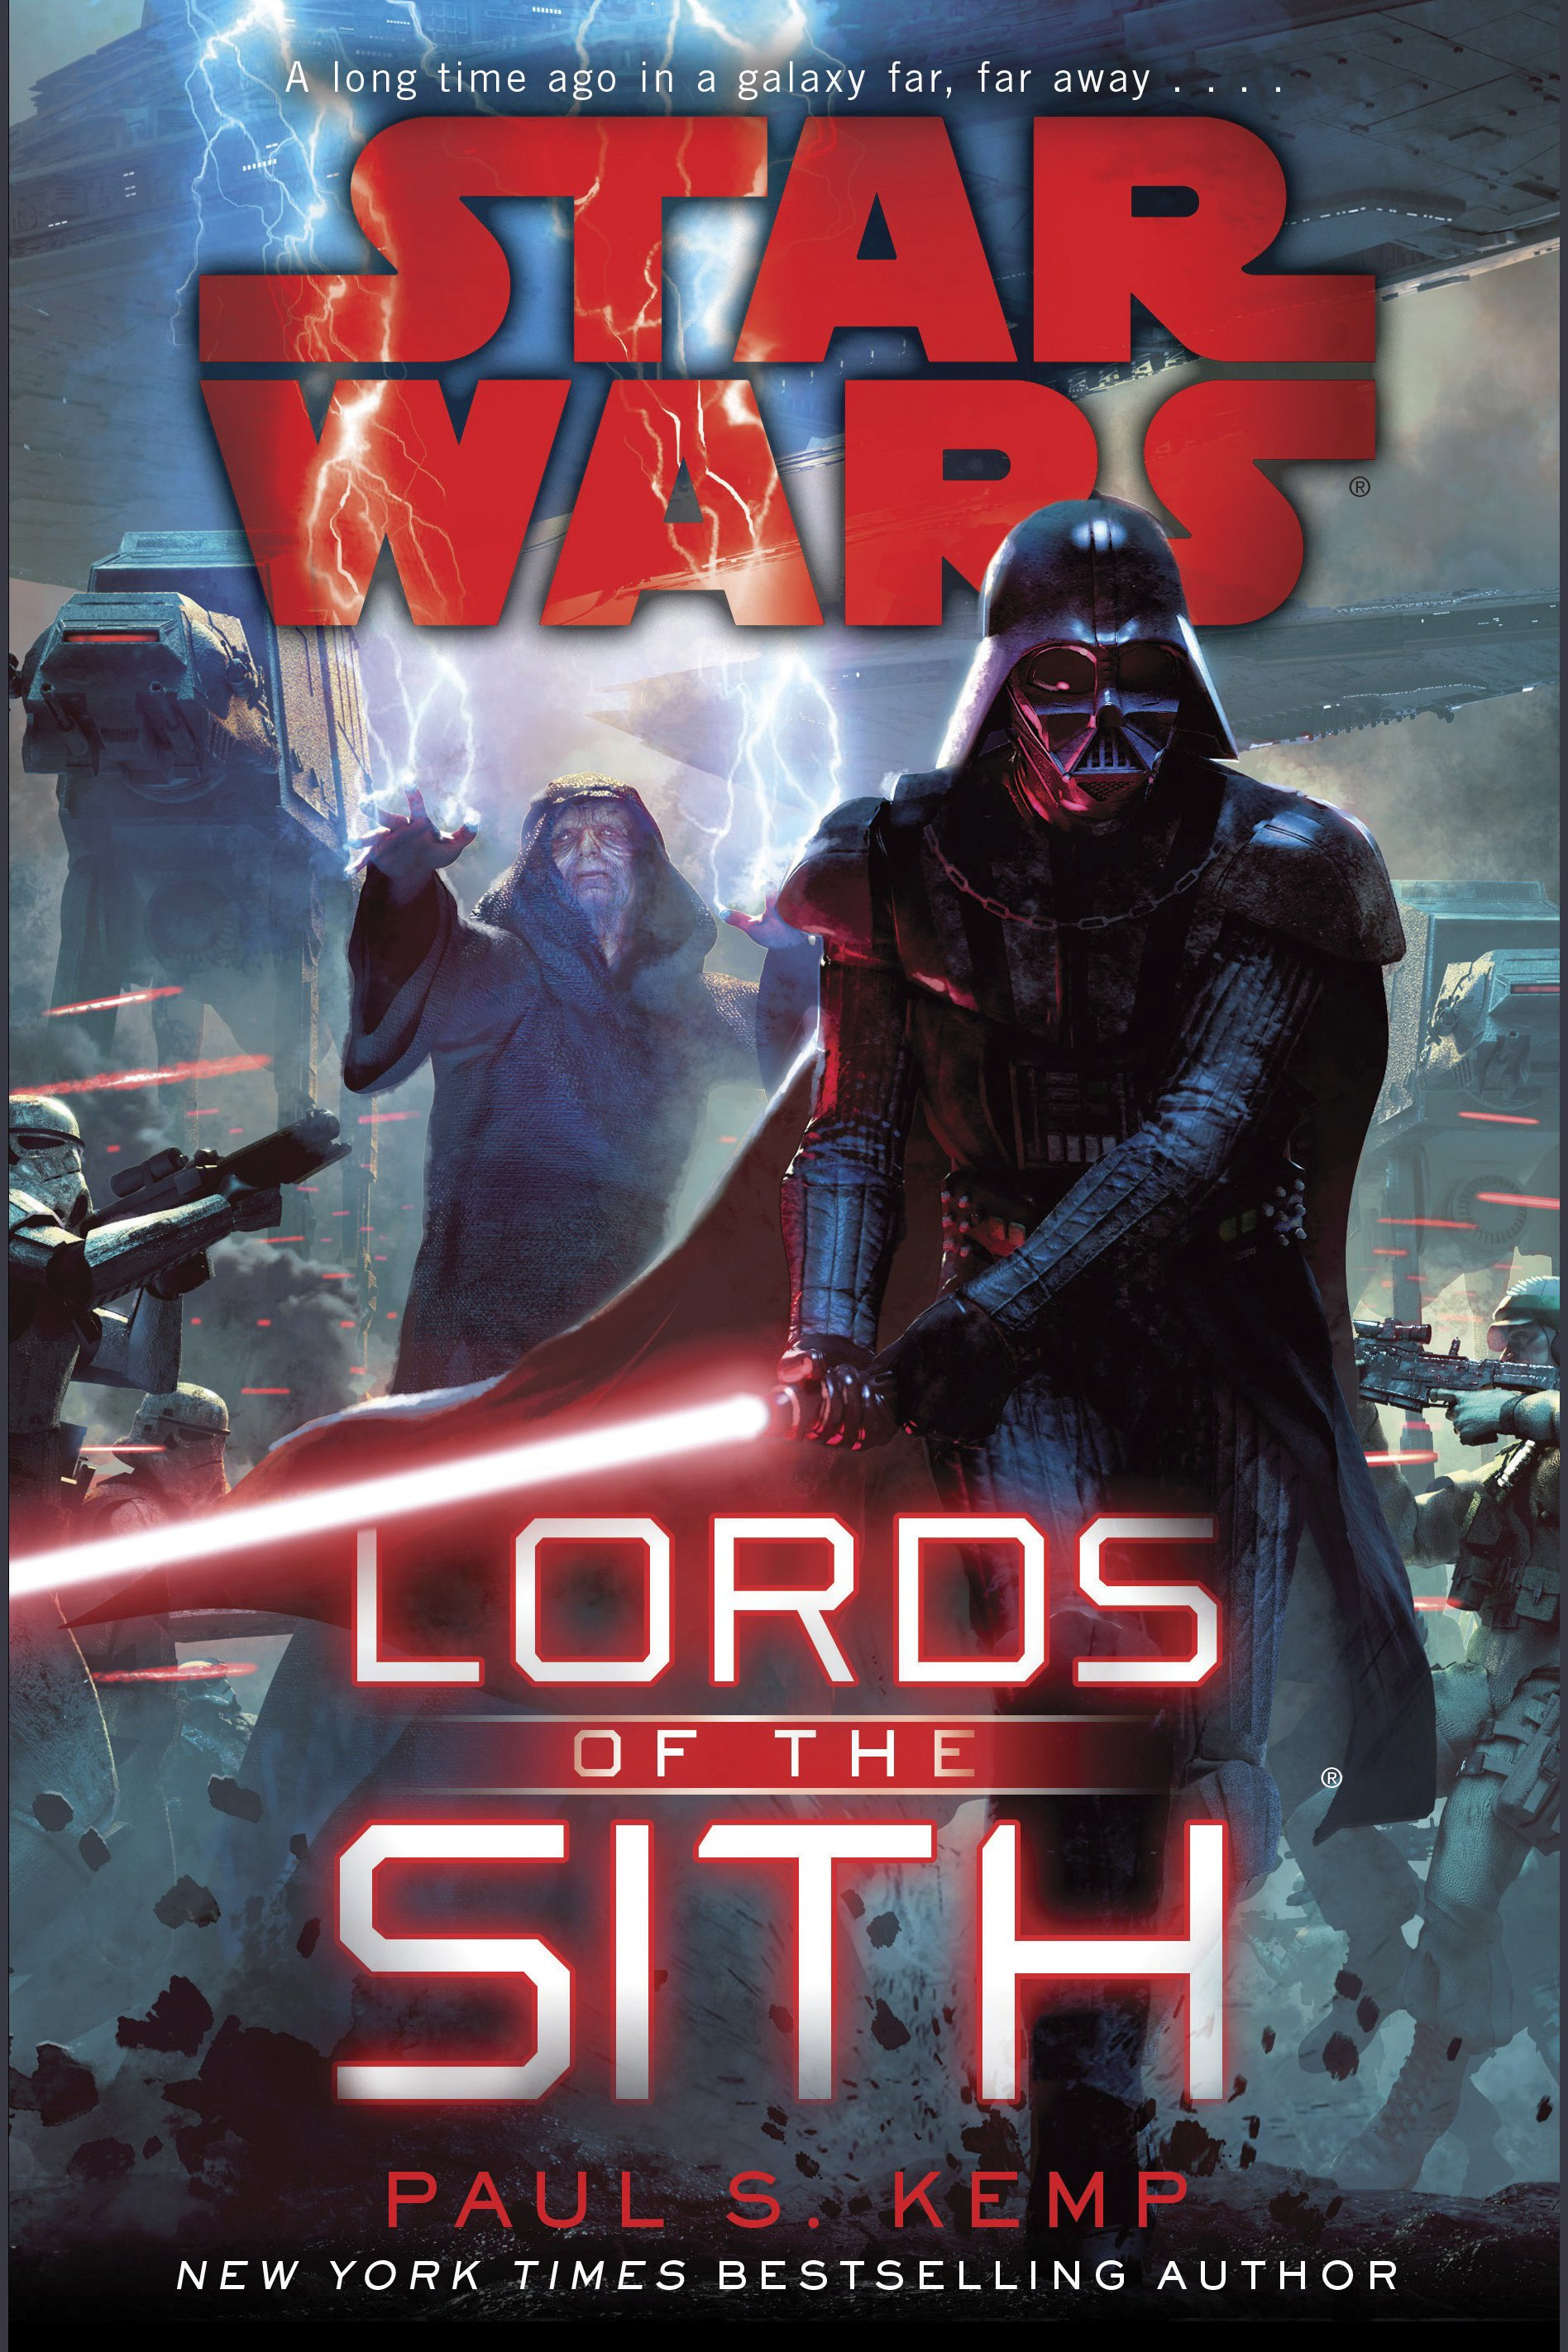 Star Wars, lords of the Sith cover image